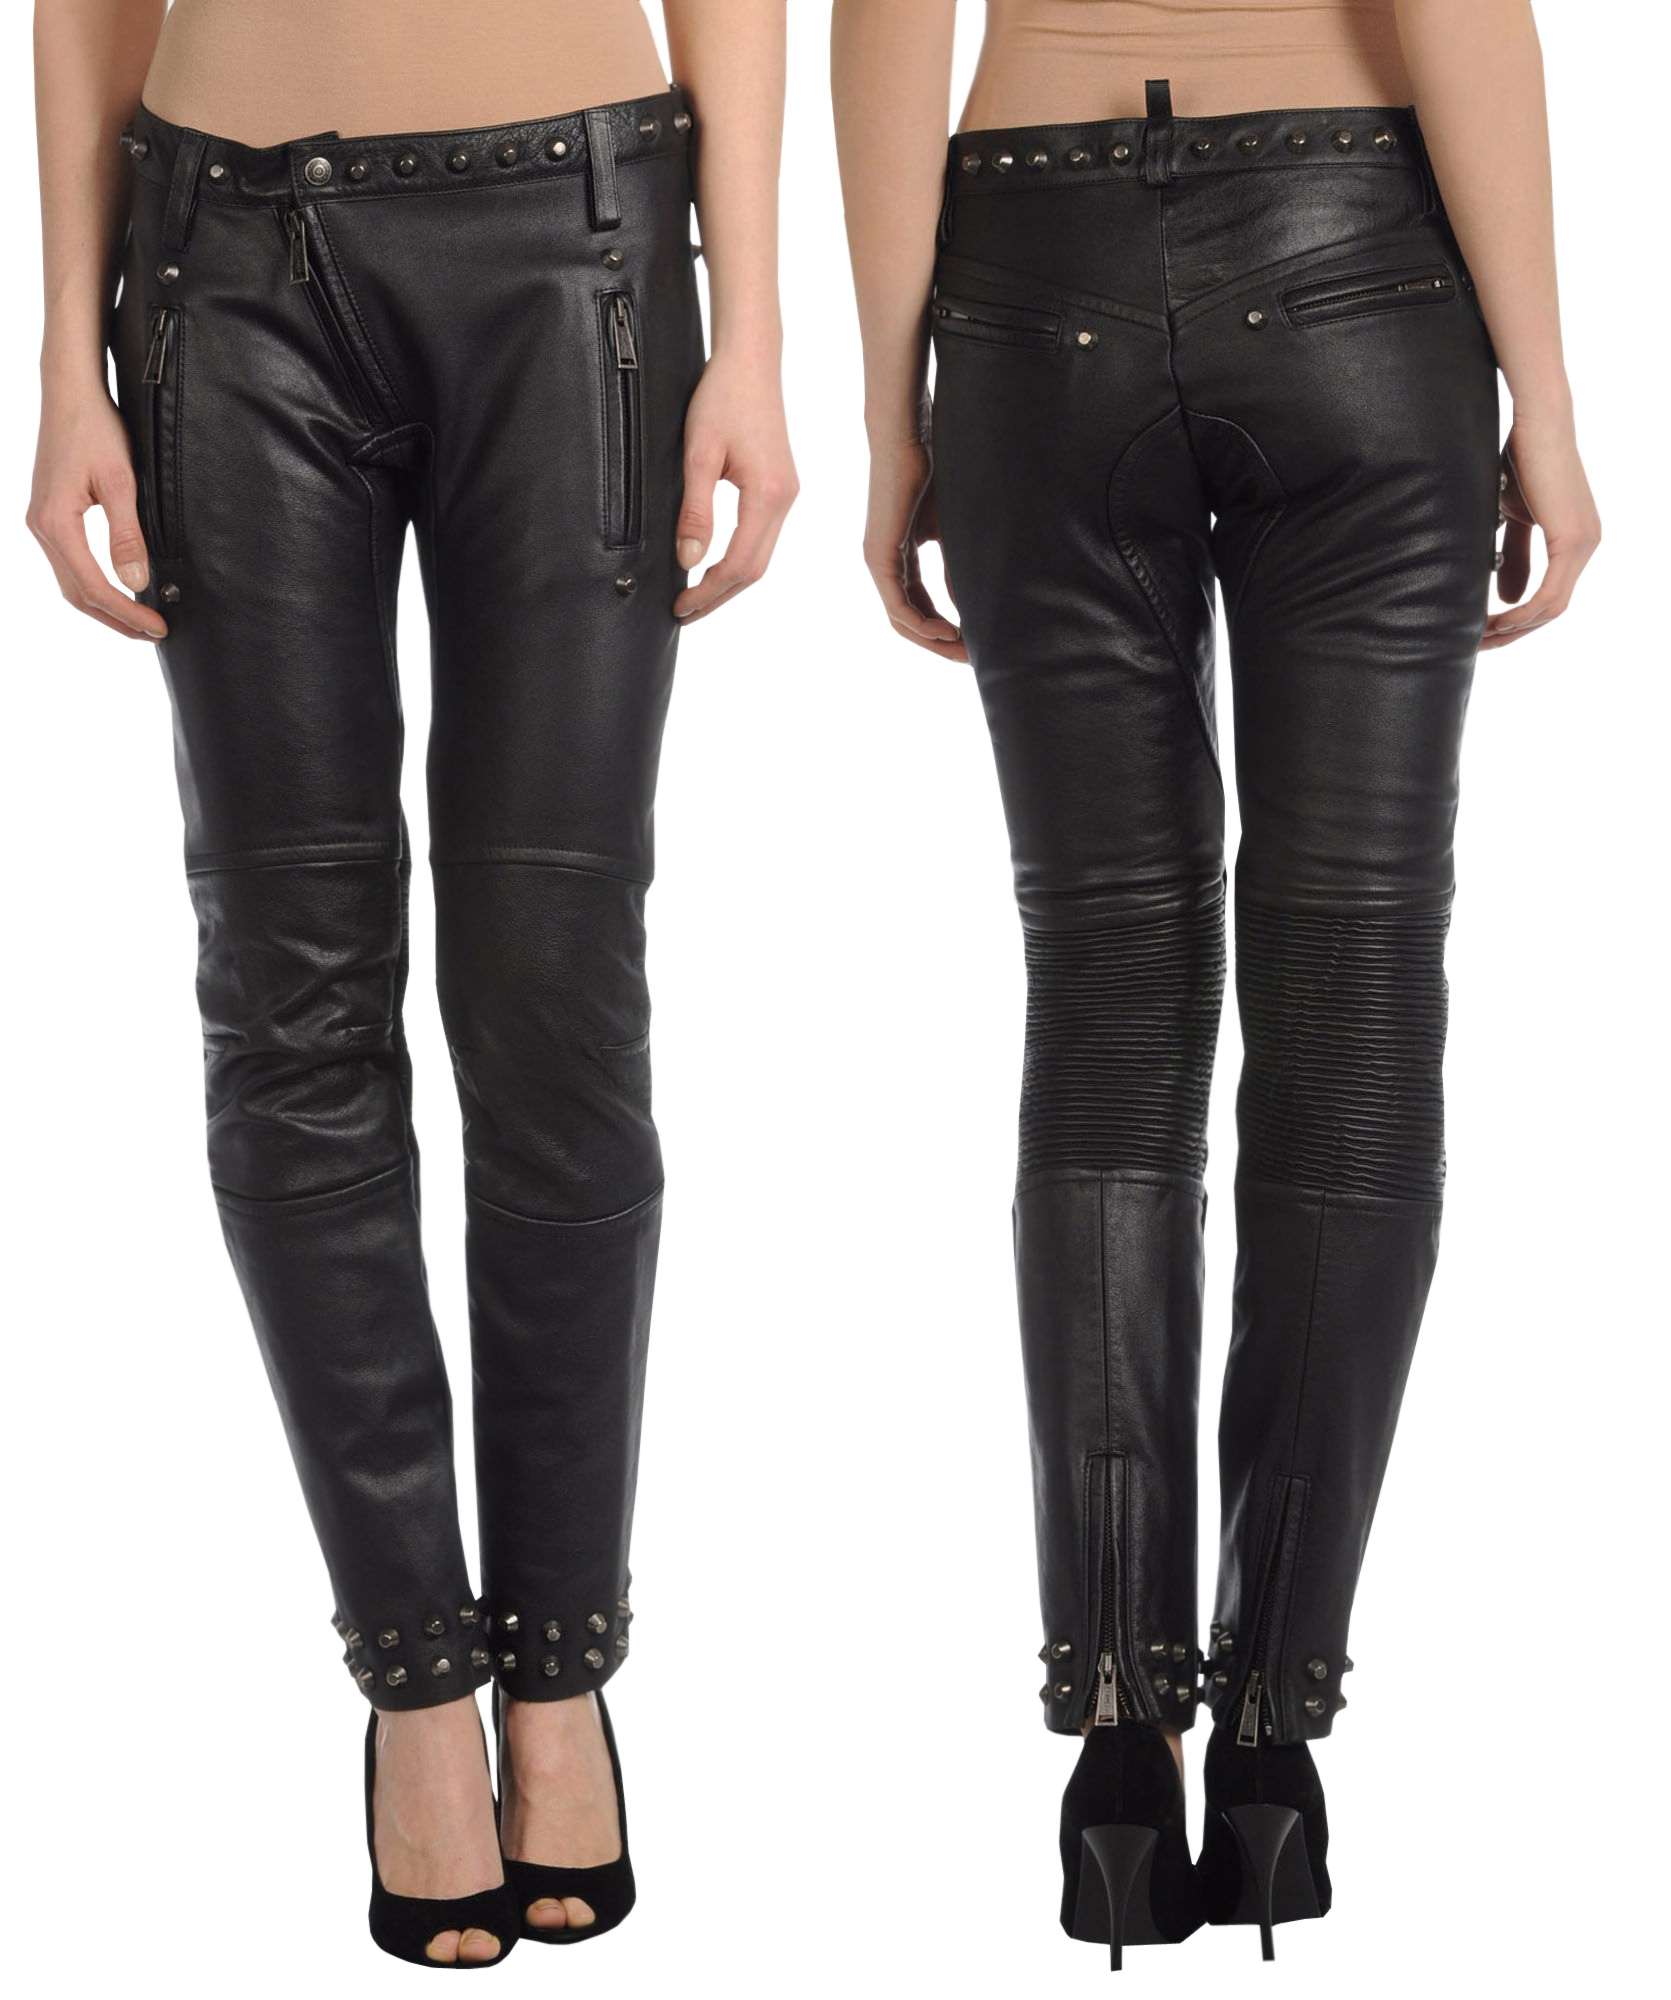 Simple Skin Tight Leather Pants, Leather Boots  Shay Stepped Out With Friends Wearing A Sleek And Saucy Look Consisting Of  Stylishskintightwomensleatherpants Buy Stylish Skin Tight Womens Leather Pants Online Helmut Langcant